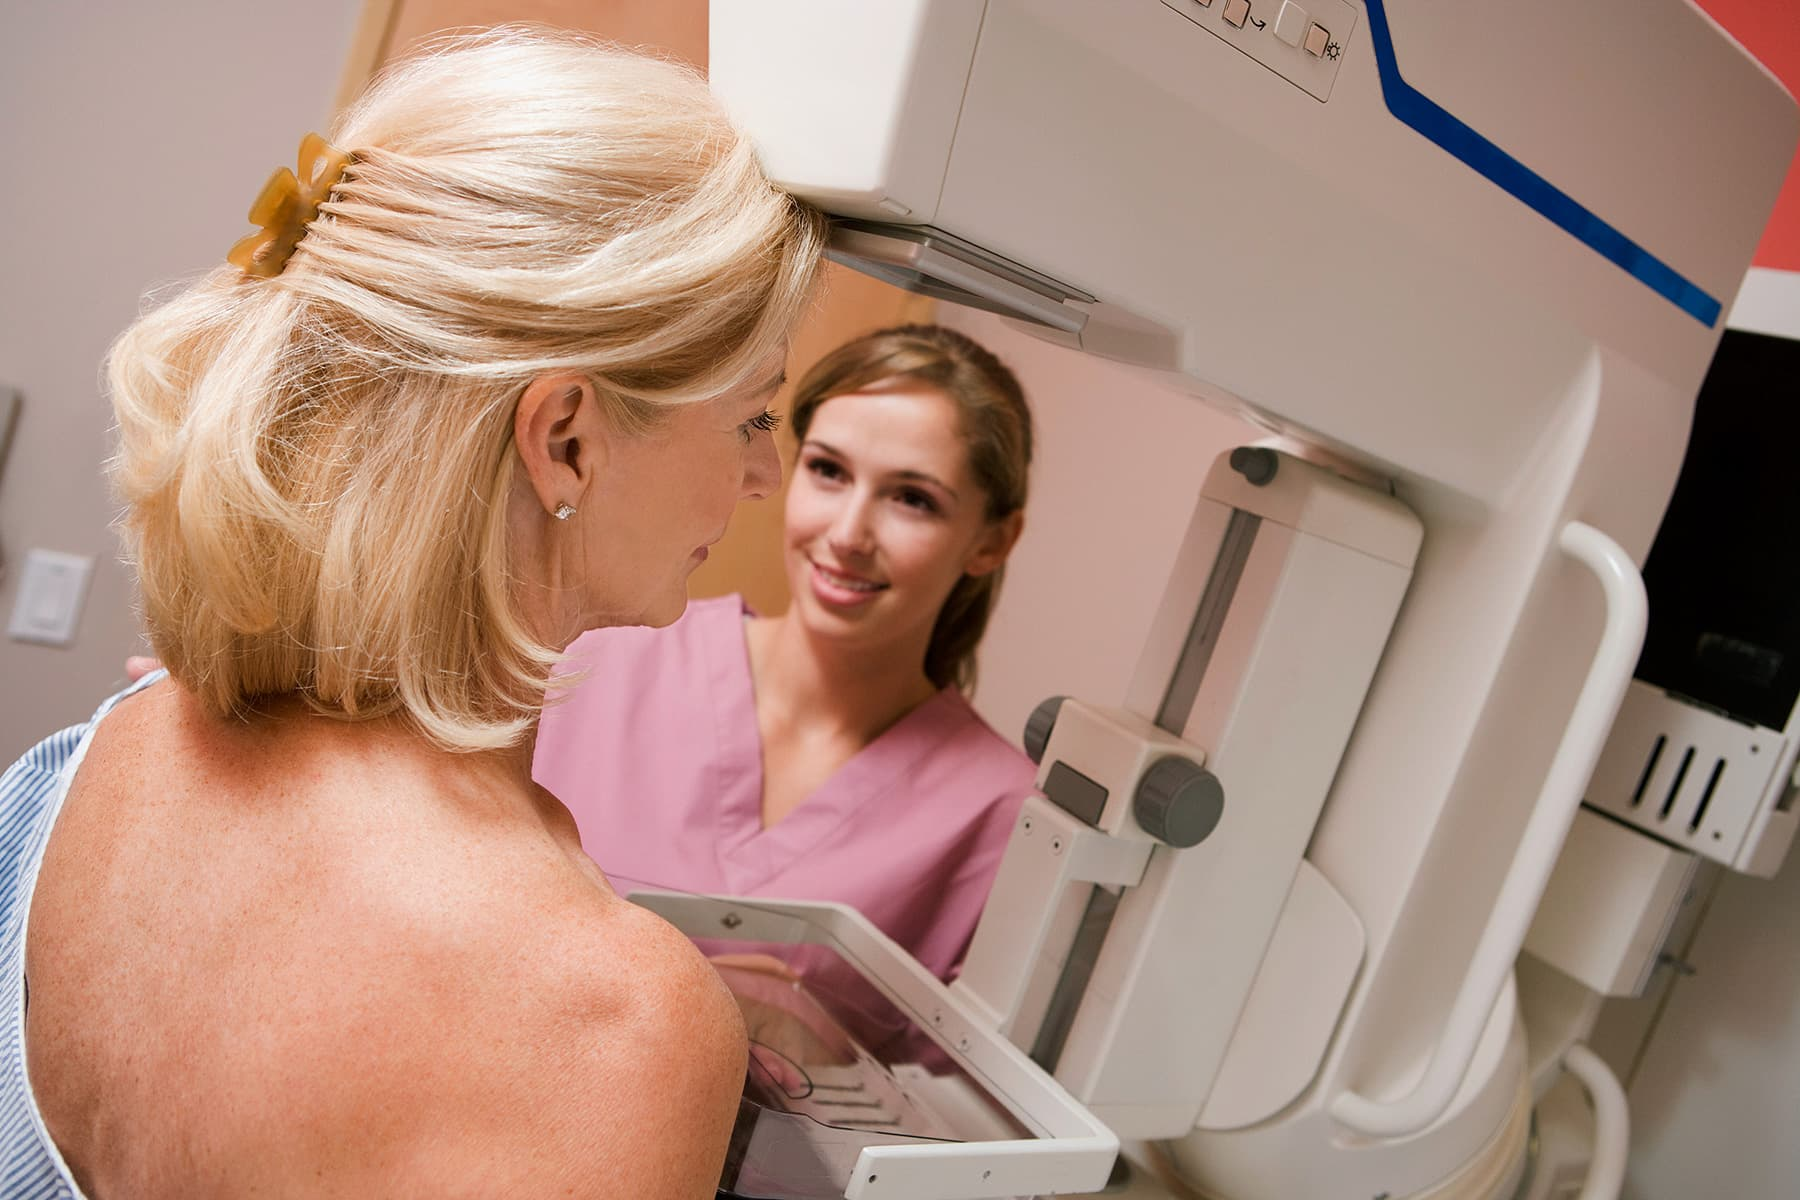 Skipping Mammograms Raises Odds for Breast Cancer thumbnail